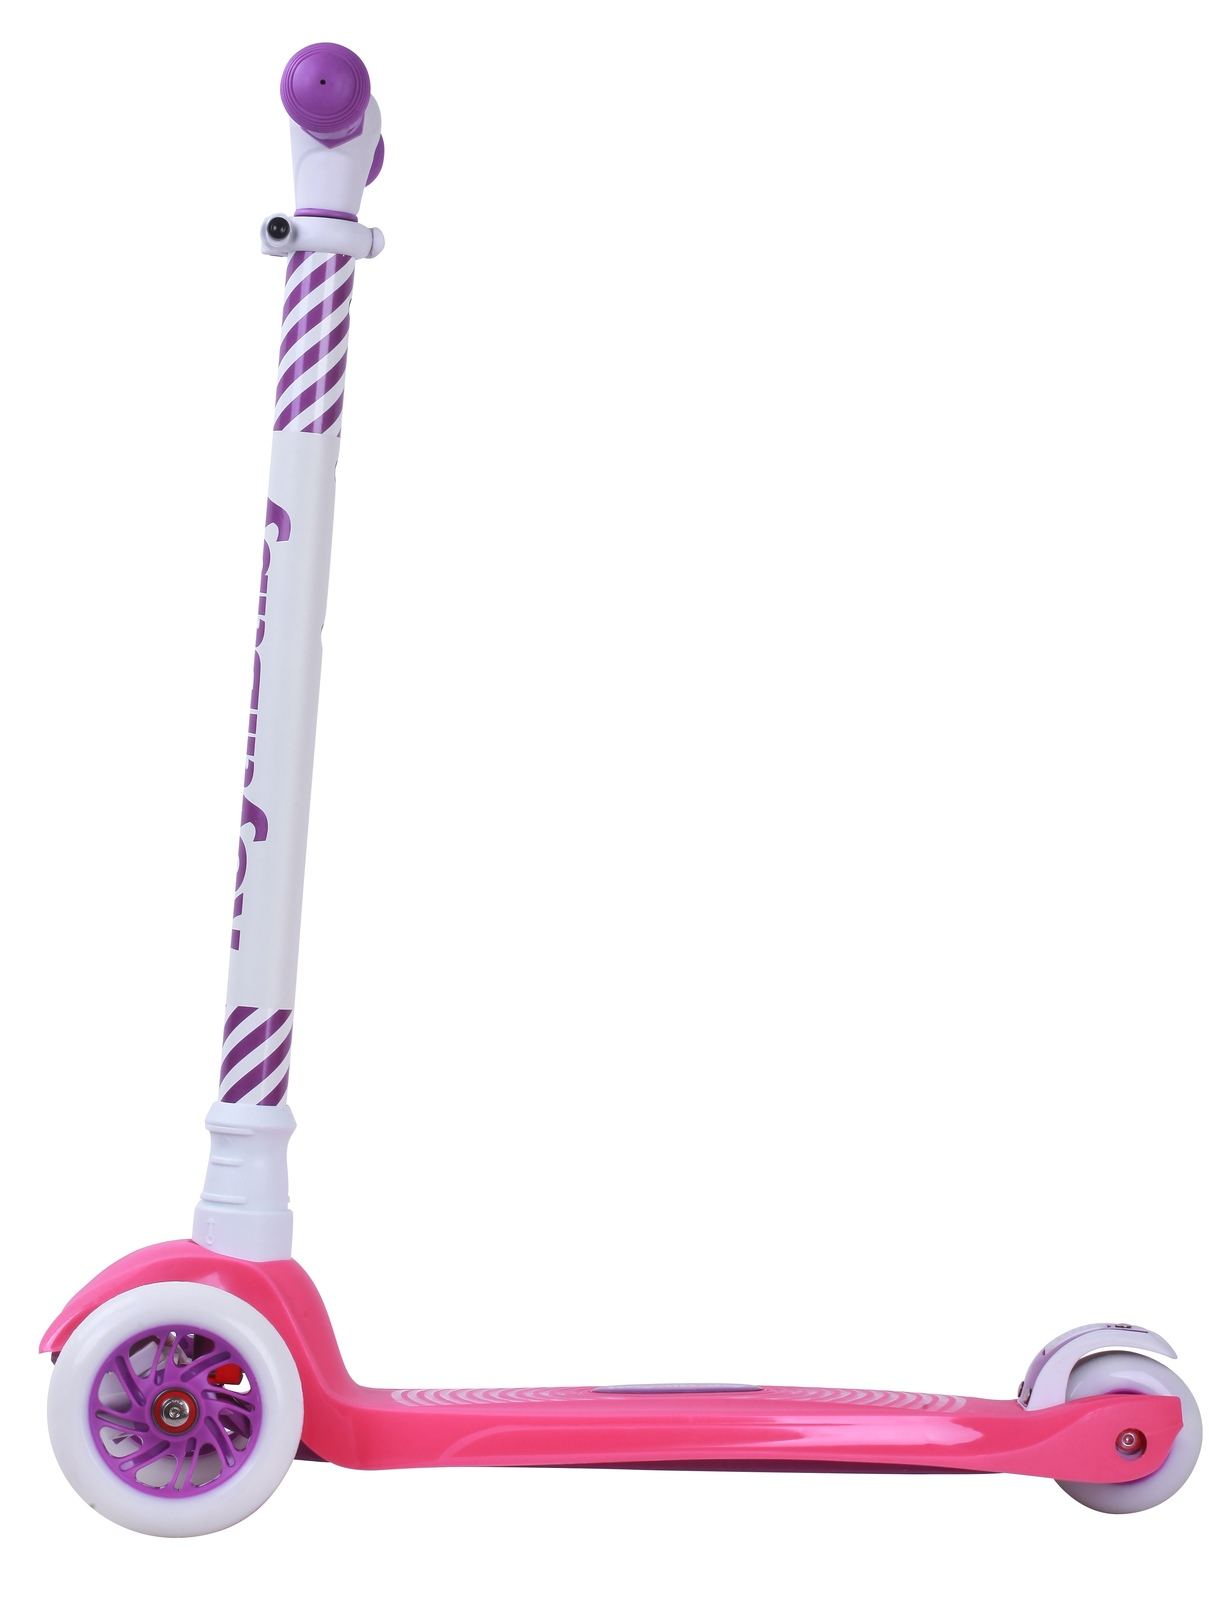 RoyalBaby: Basic Adjustable Scooter - Dazzler image